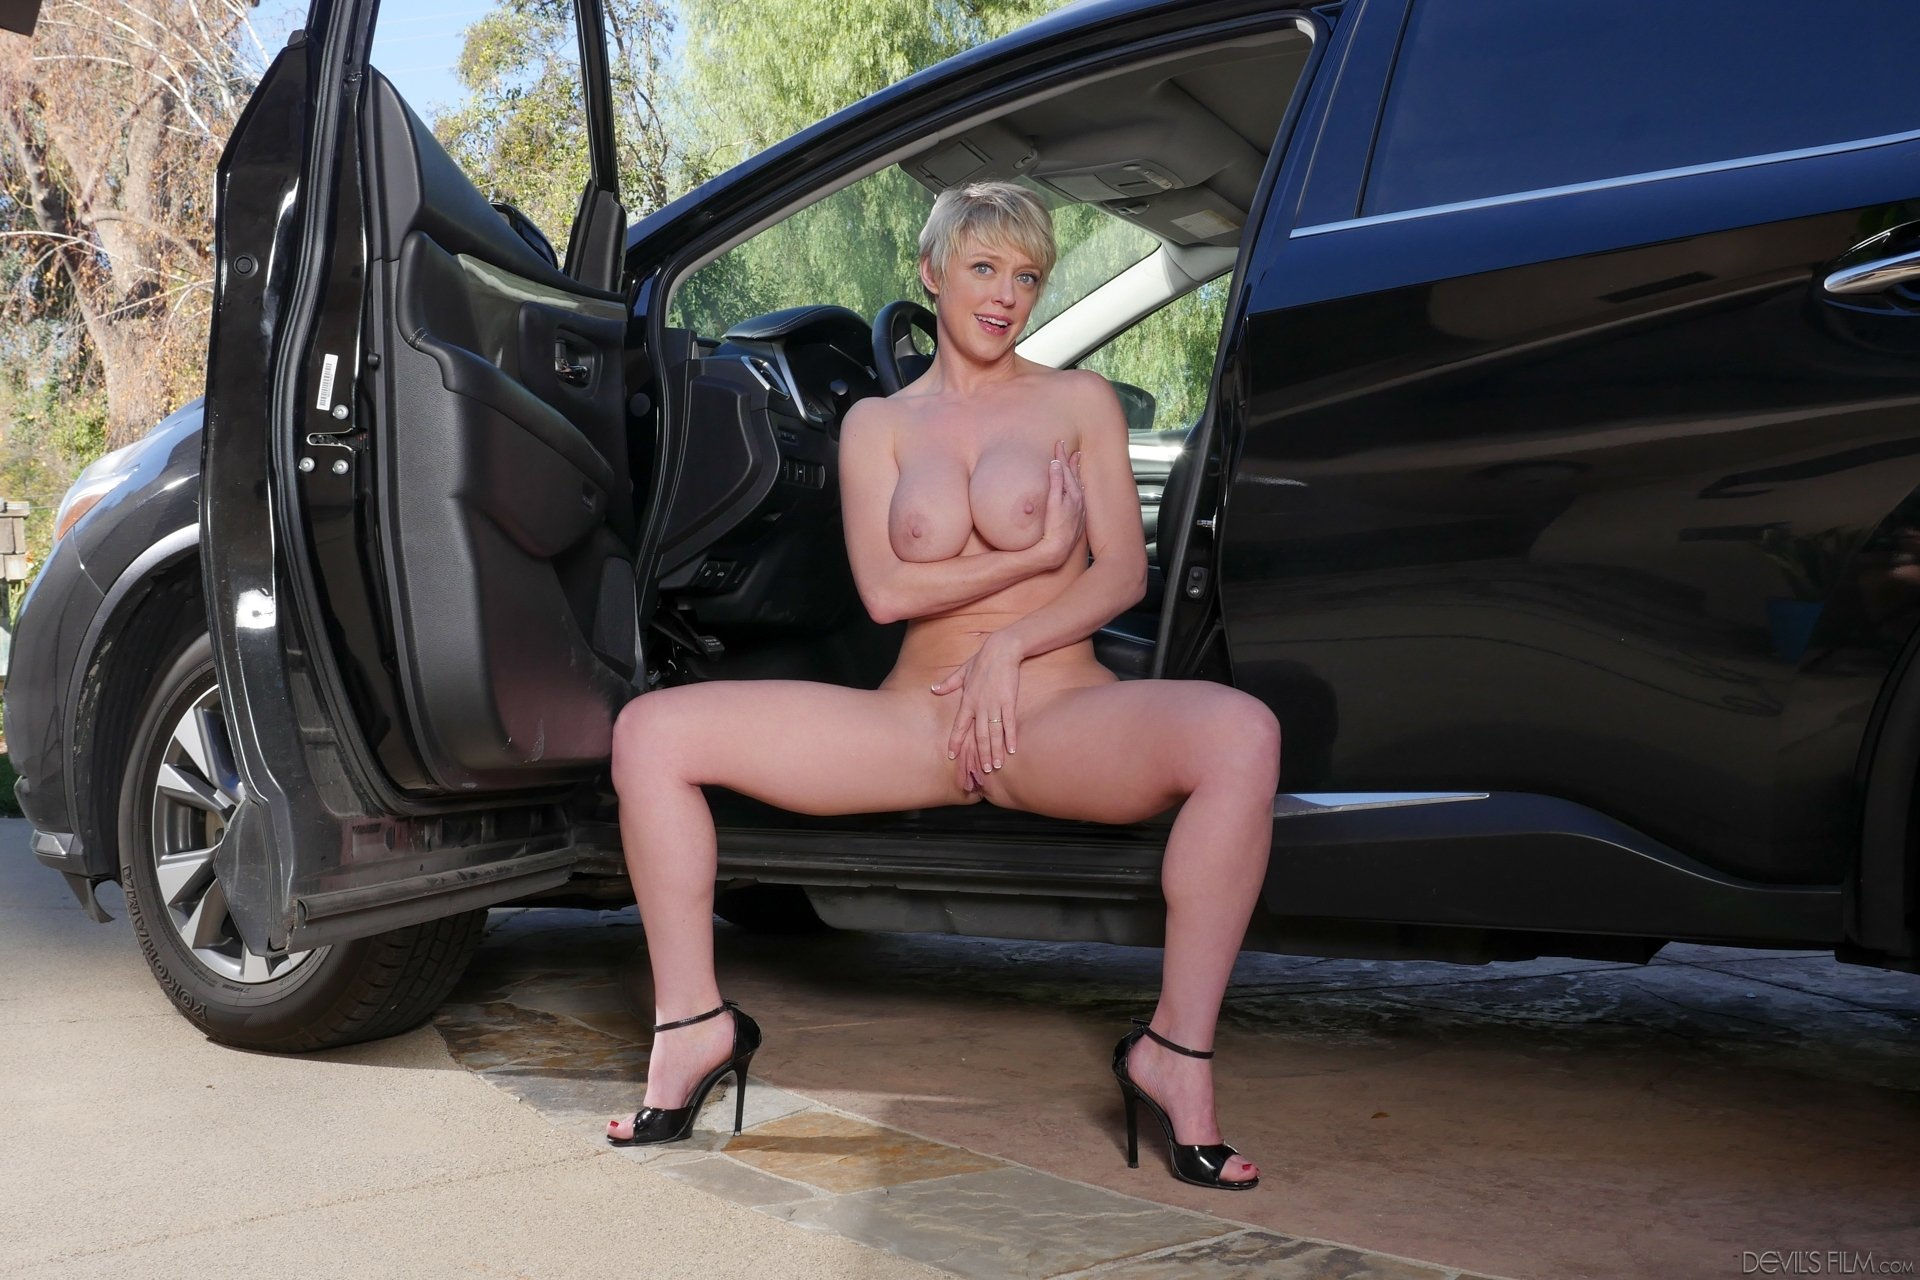 Xxx movies outdoor Mature amateur busty